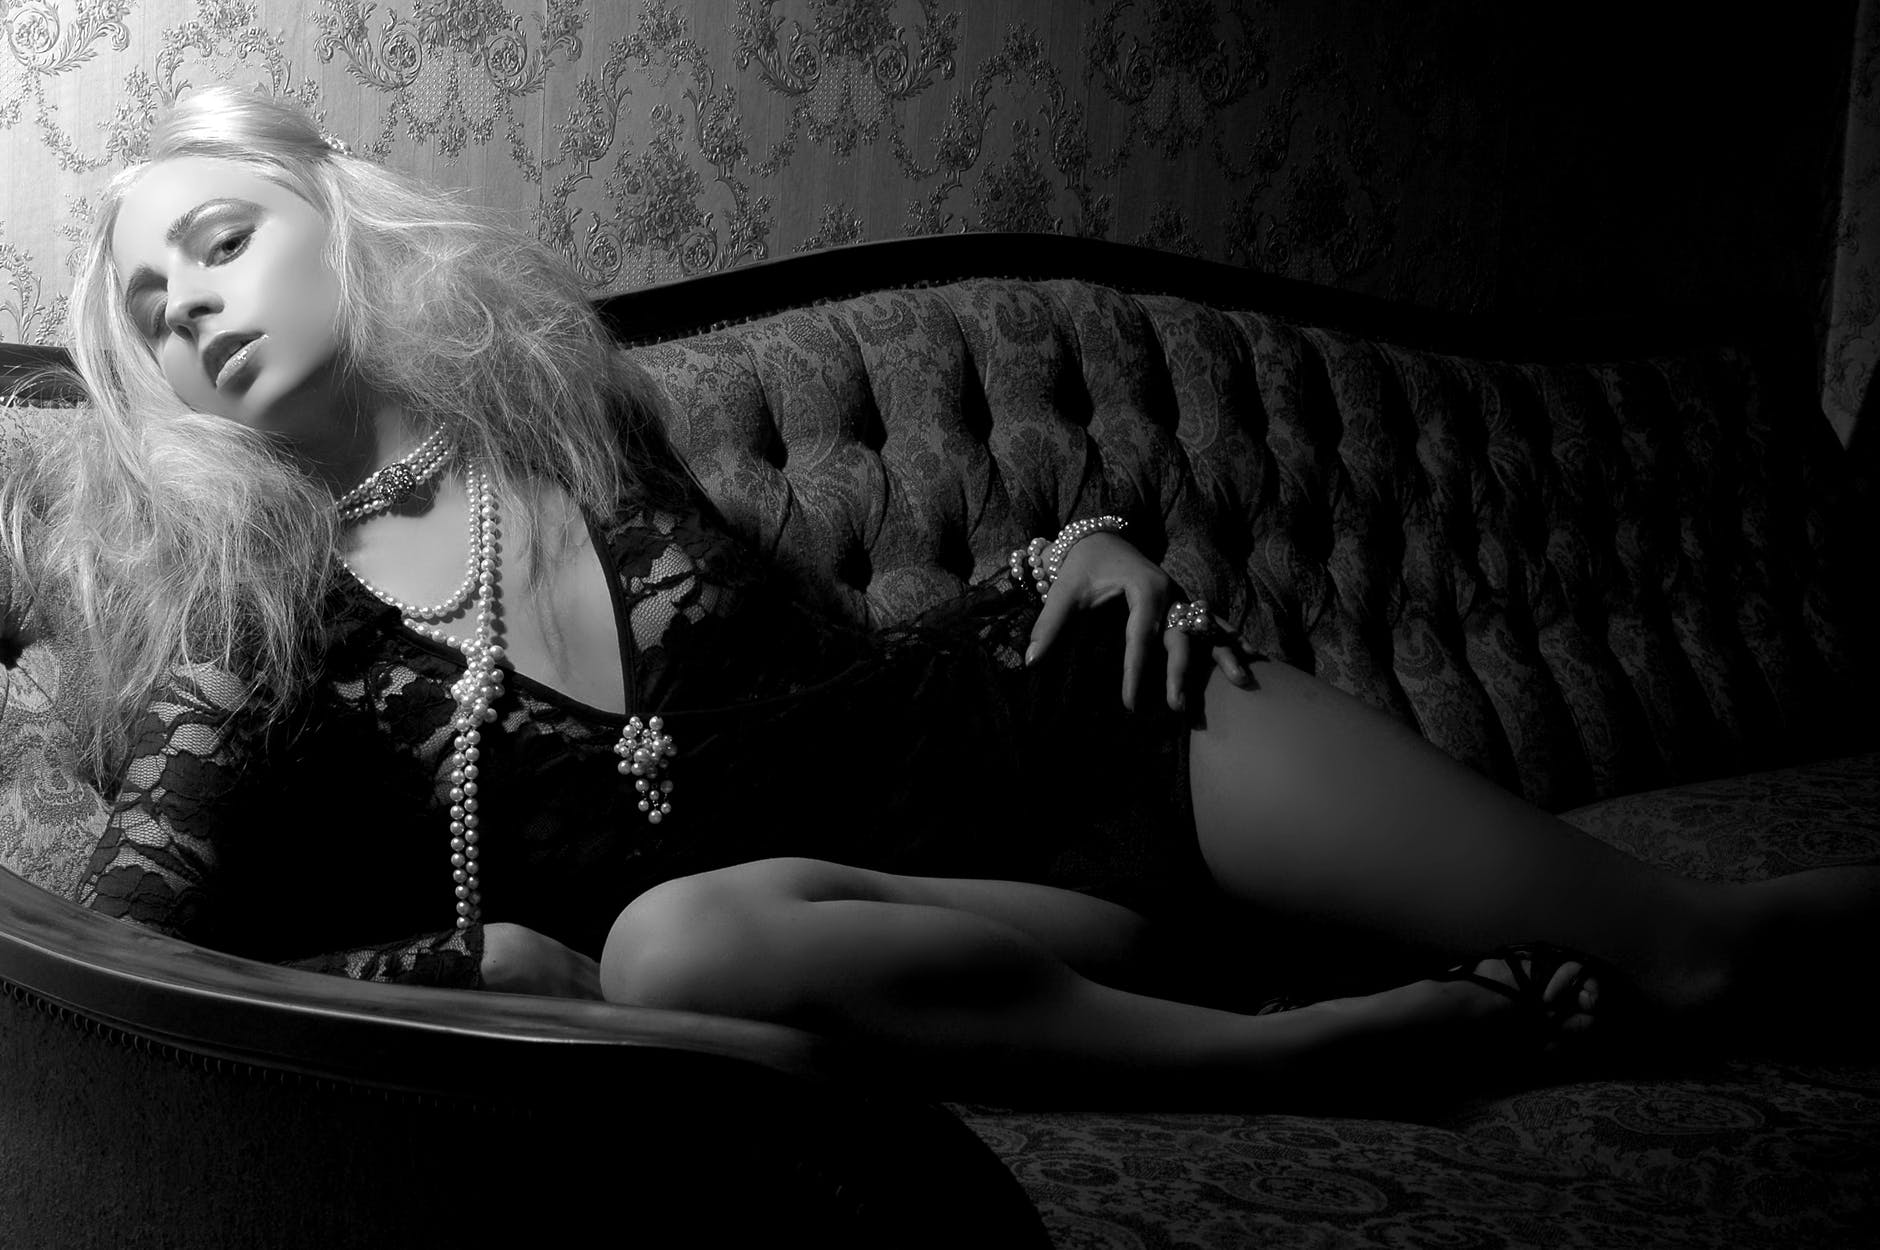 Black and white image of a womxn lying on a tufted, chaise lounge. Hxr hair  is white blonde, and has pearls hanging from her neck. Shx's wearing black lace and stares at the camera seductively.